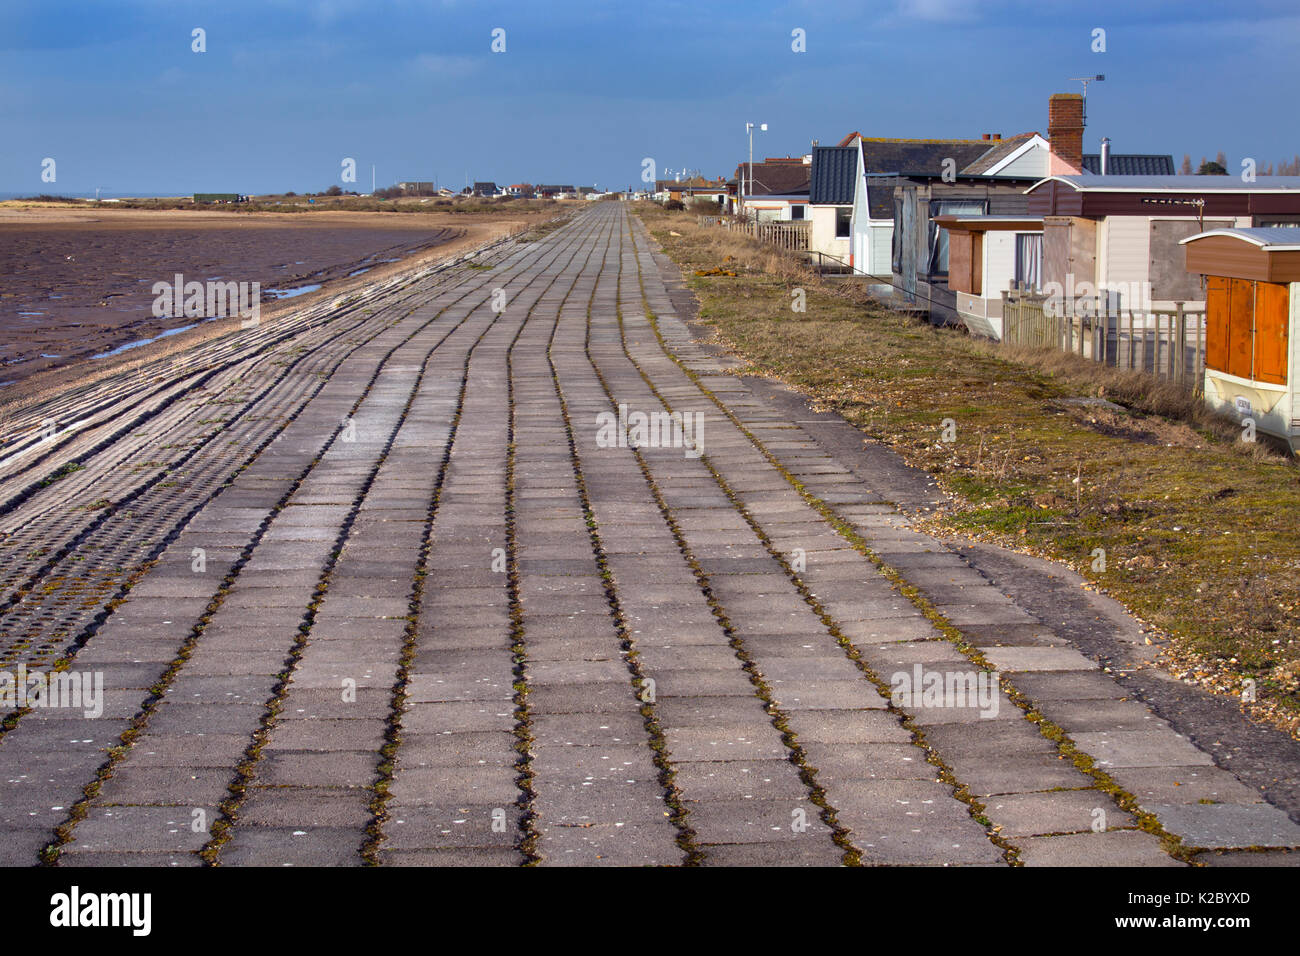 Sea wall and housing vulnerable to flooding around The Wash,  Snettisham, Norfolk, England, UK, February 2015. - Stock Image